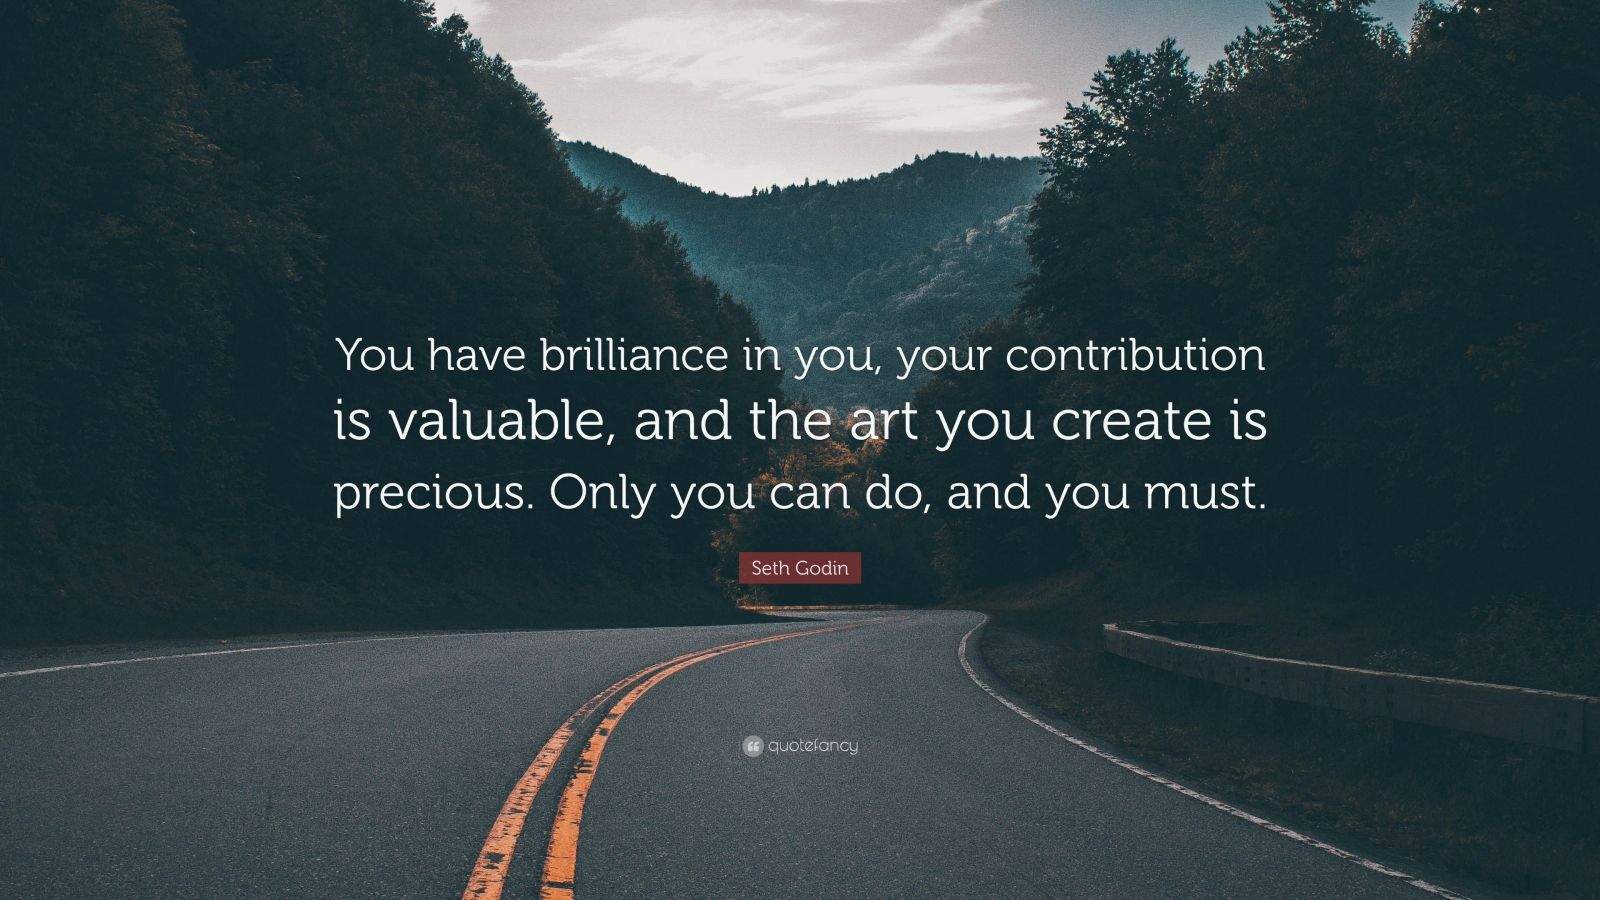 """Seth Godin Quote: """"You have brilliance in you, your contribution is valuable, and the art you create is precious. Only you can do, and you must."""""""